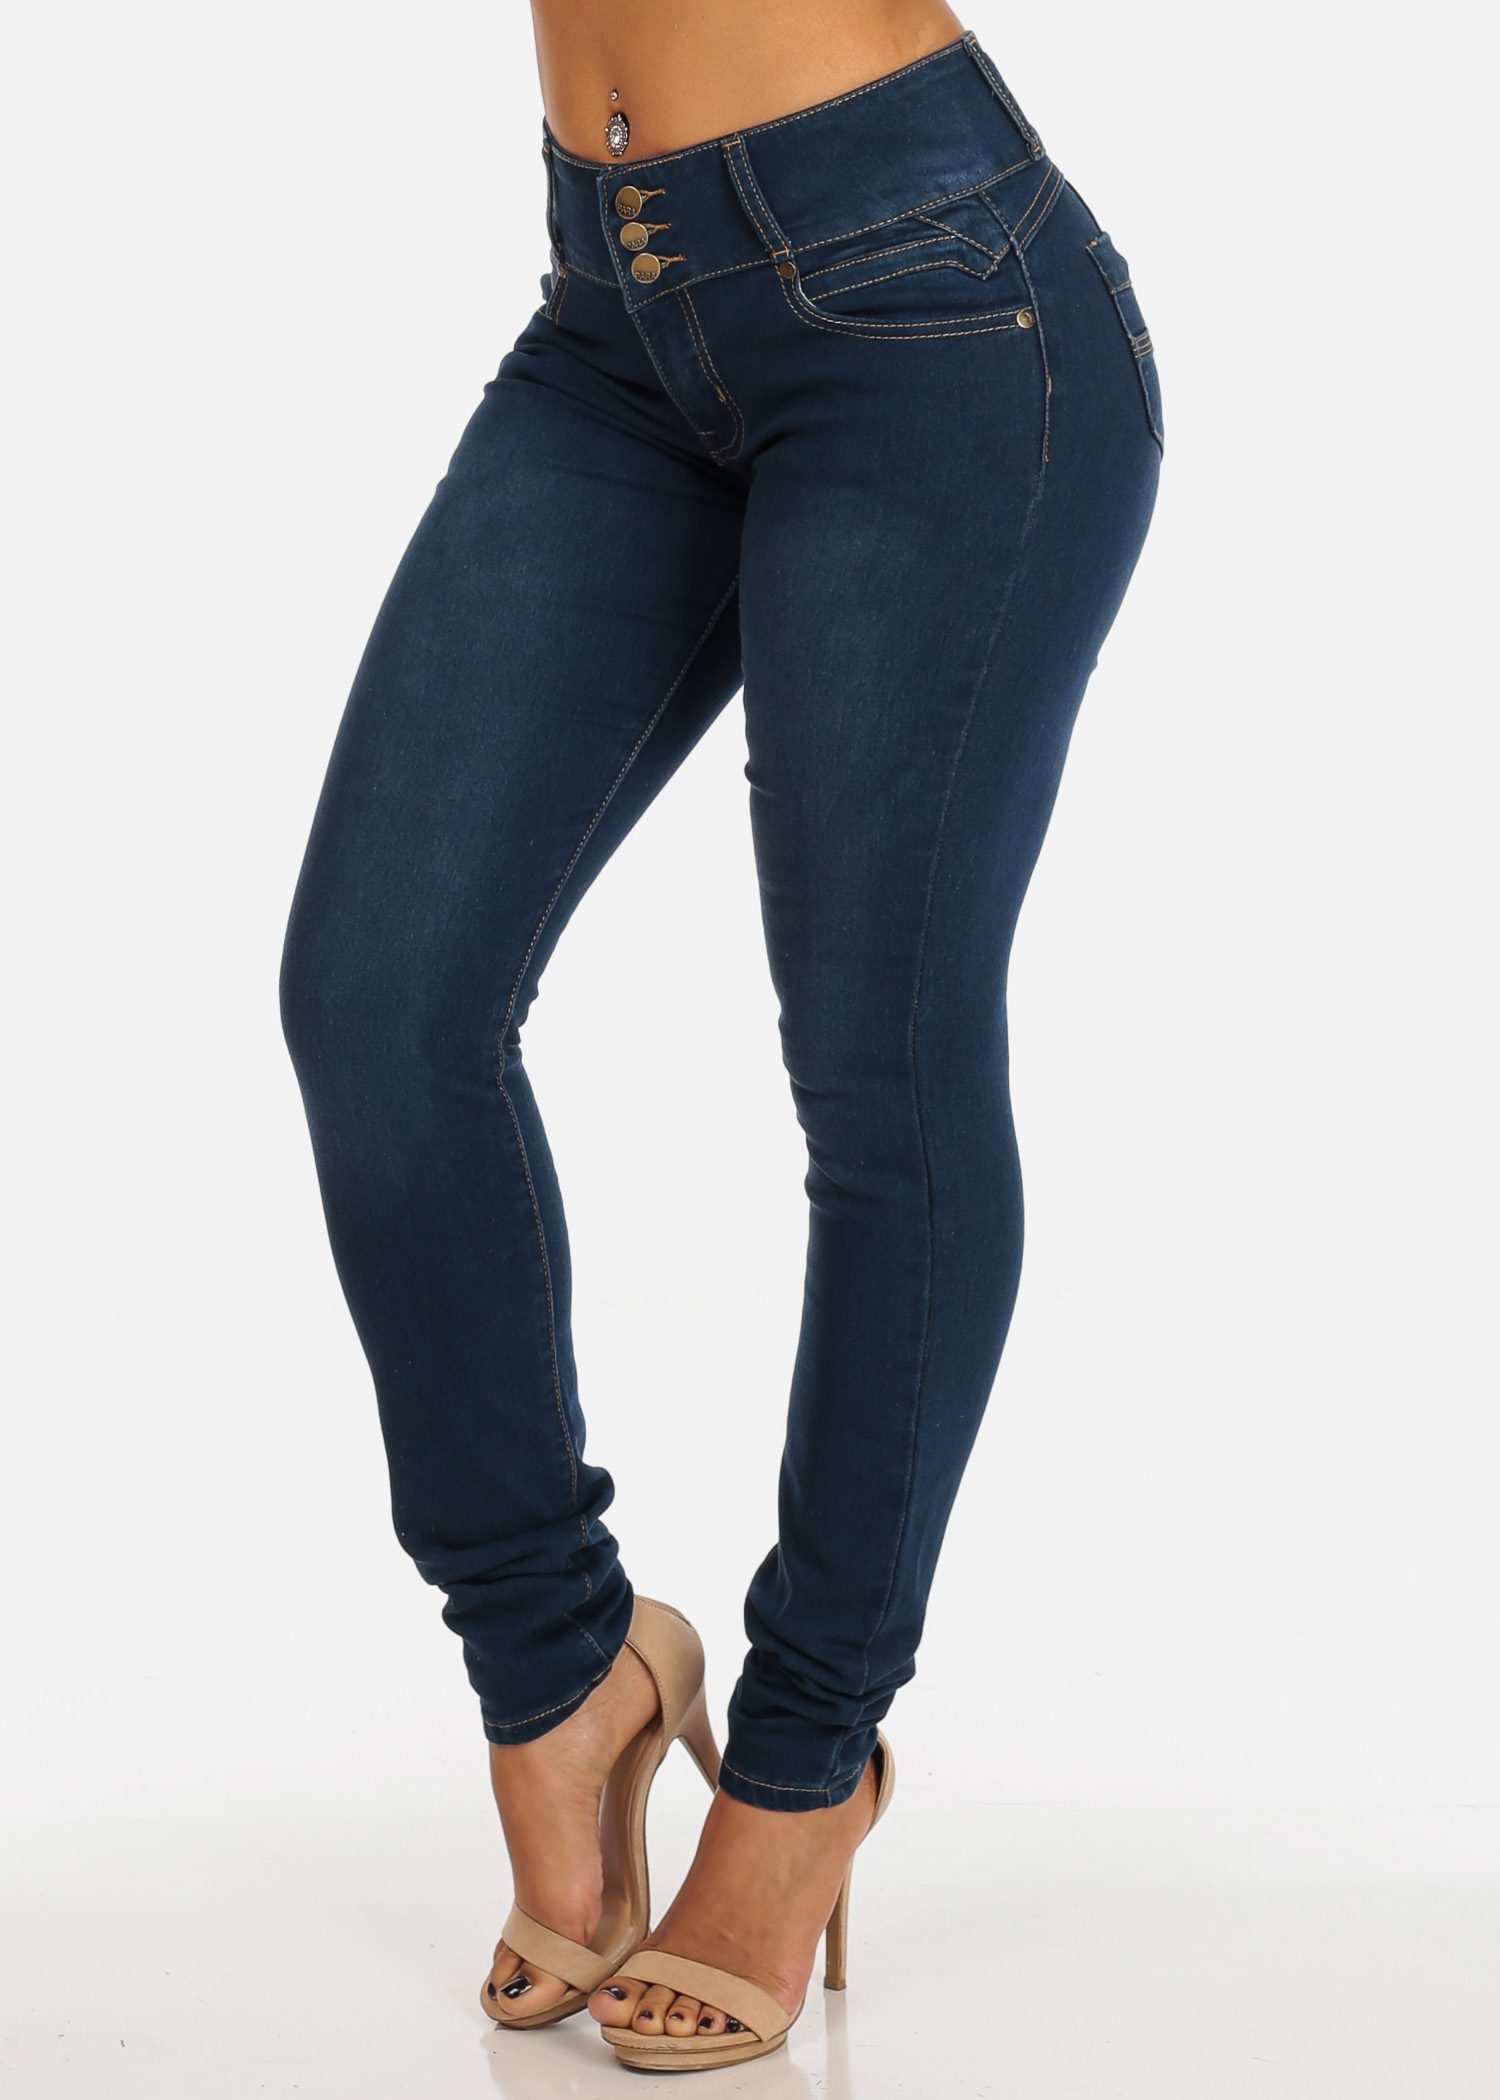 Womens Juniors Colombian Design Levanta Cola PUSH UP Butt Lifting 3 Button Mid Rise Med Wash Stretchy Casual Skinny Jeans 10982V